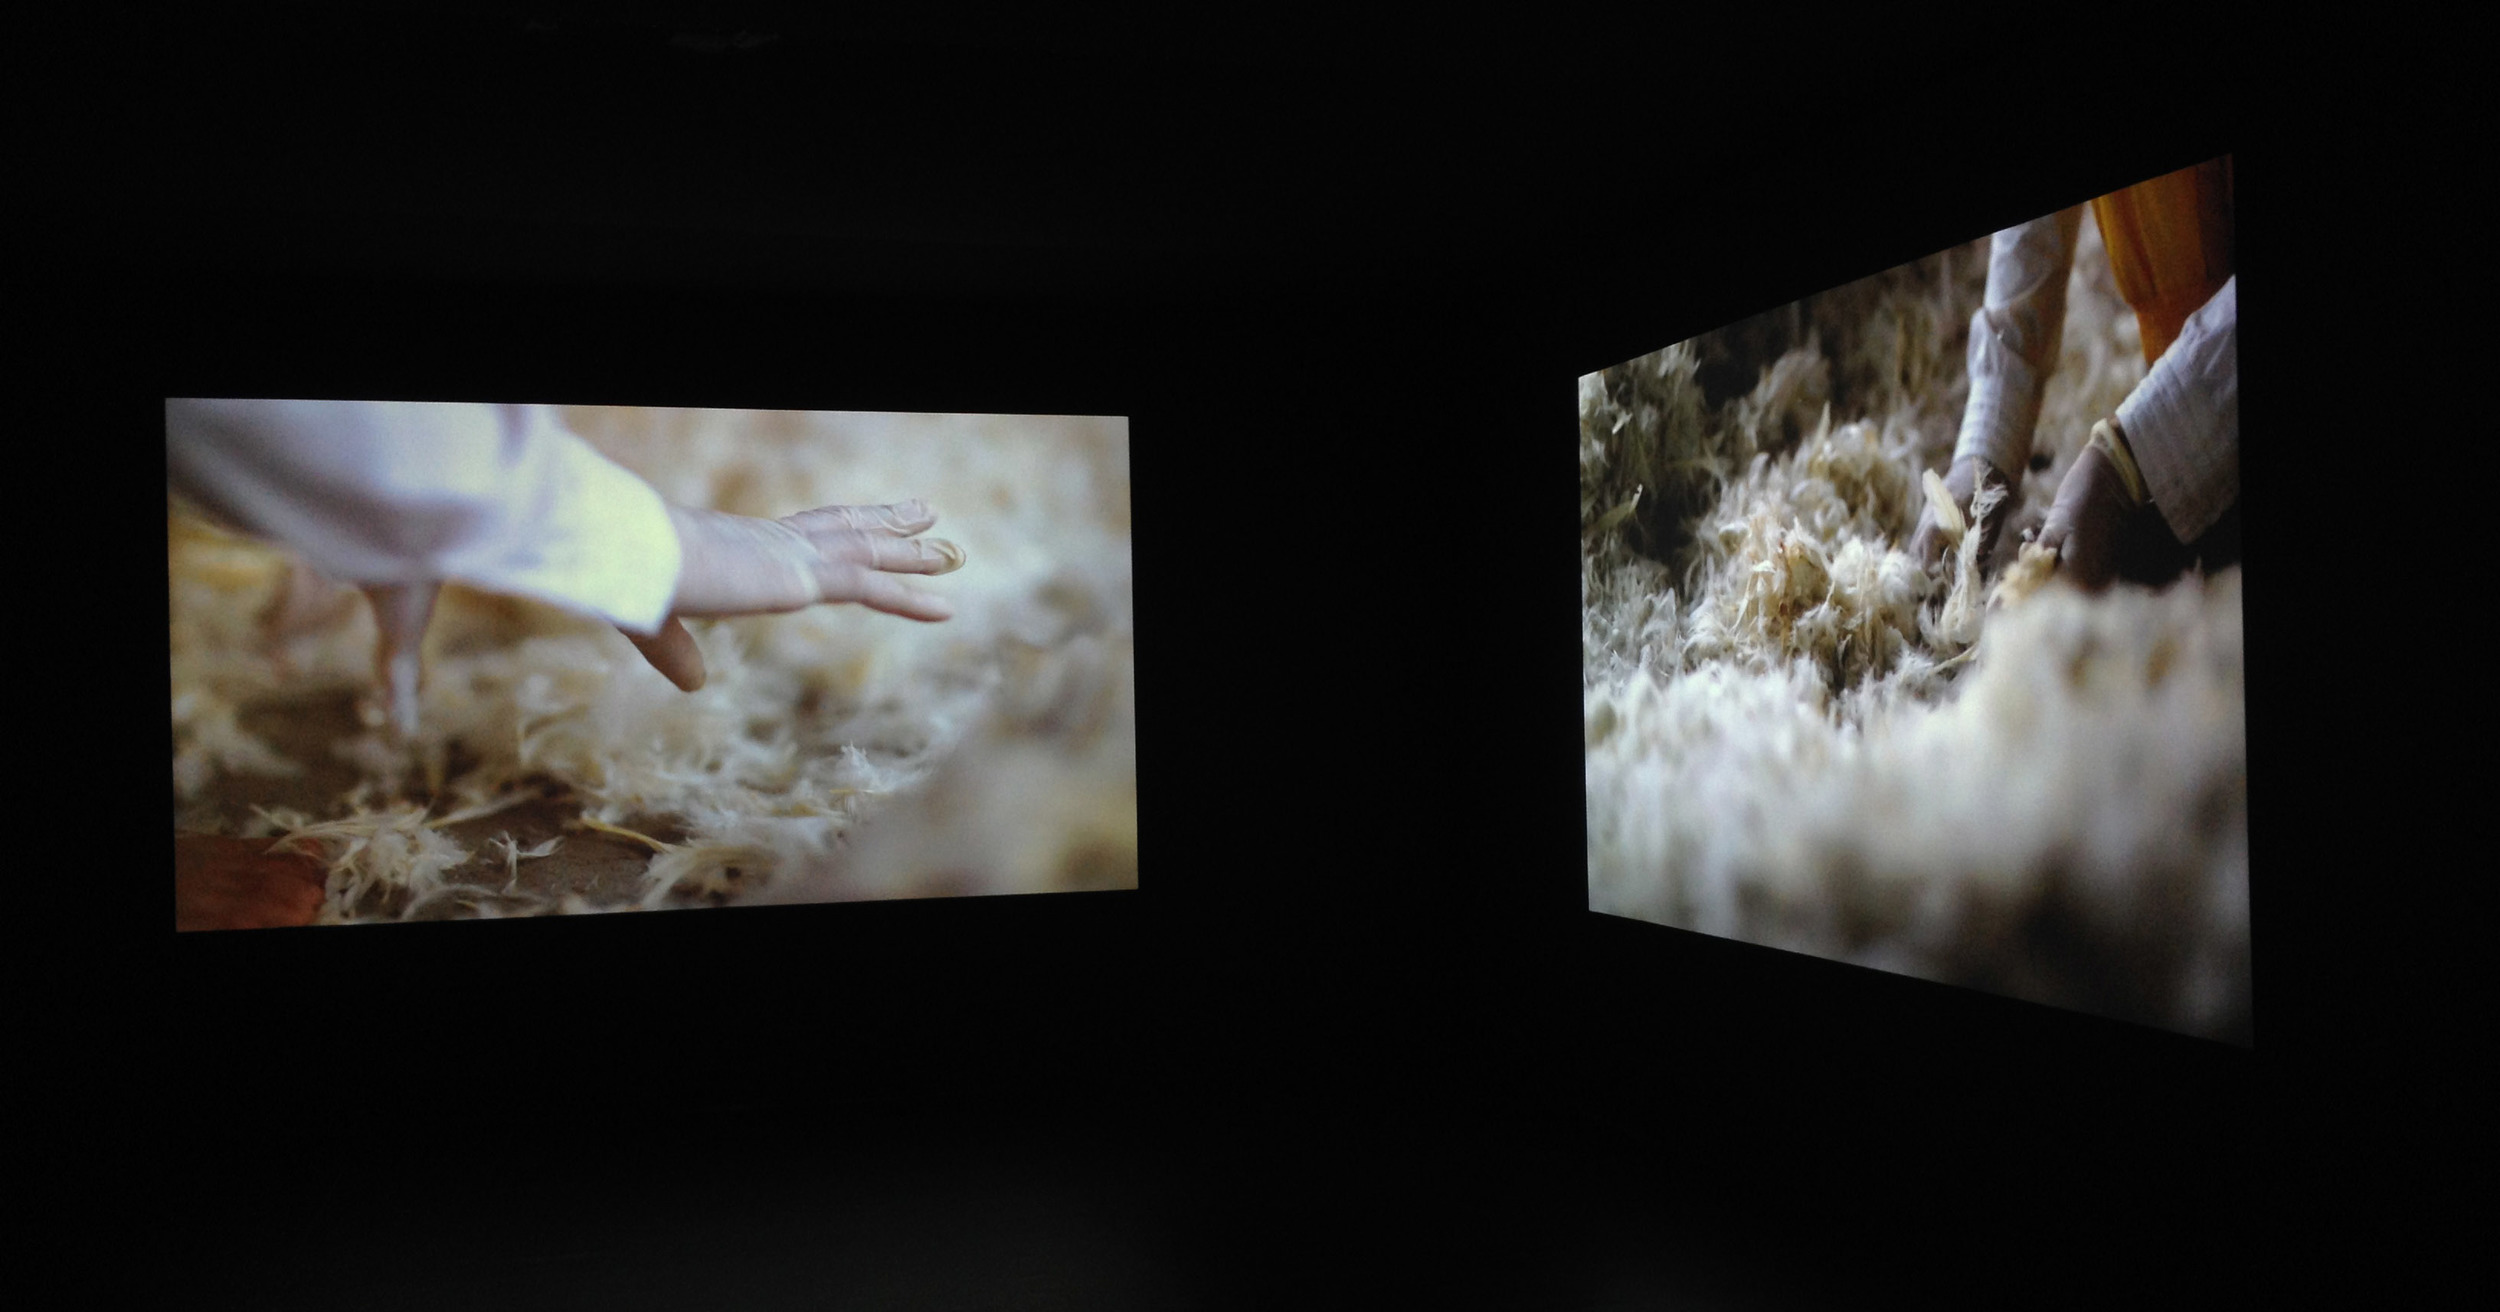 Installation view in 'Foreign Bodies' at the Wellcome Collection, London, 2013